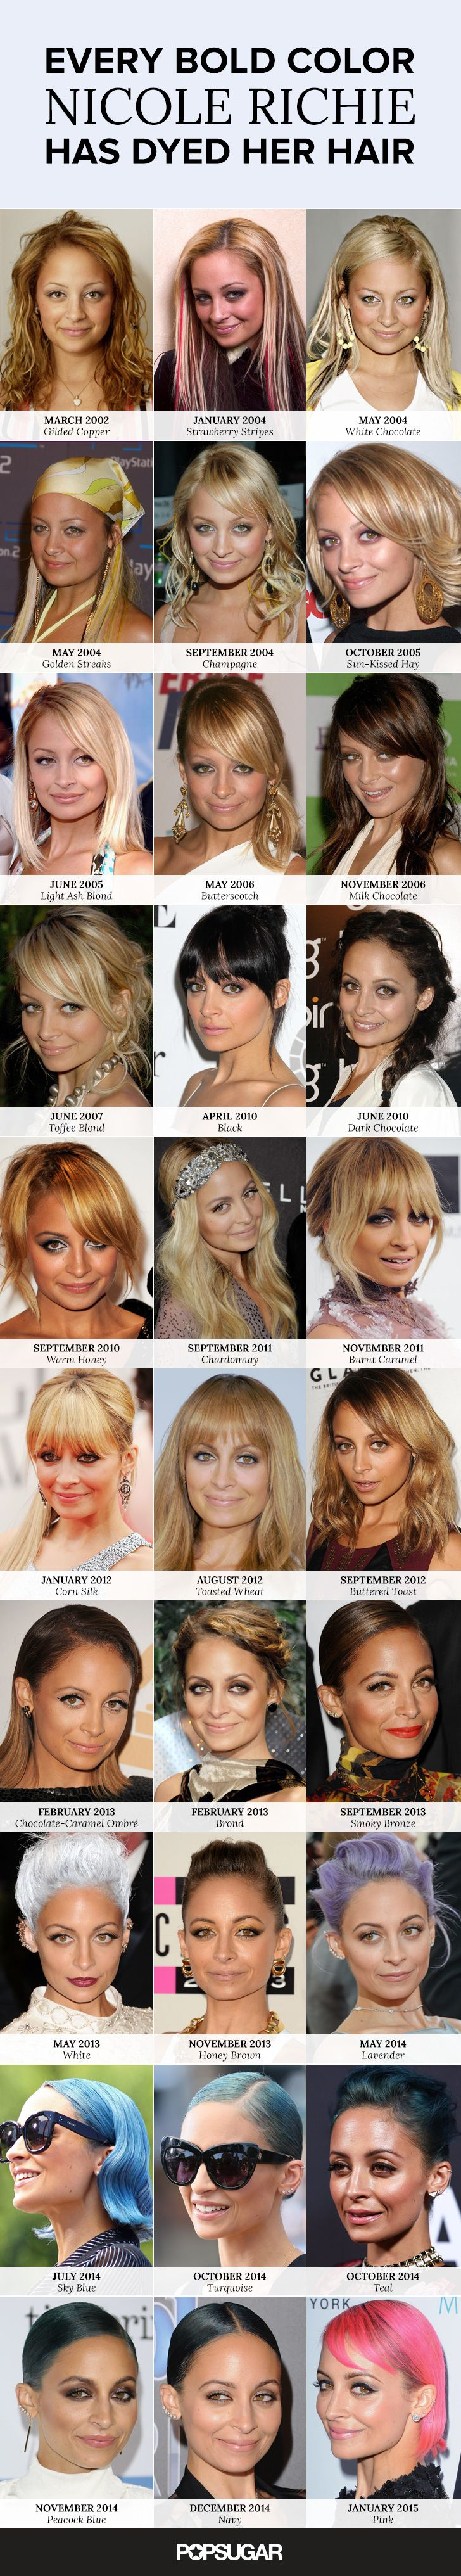 Nicole Richie has had some seriously bright and bold hair colors.